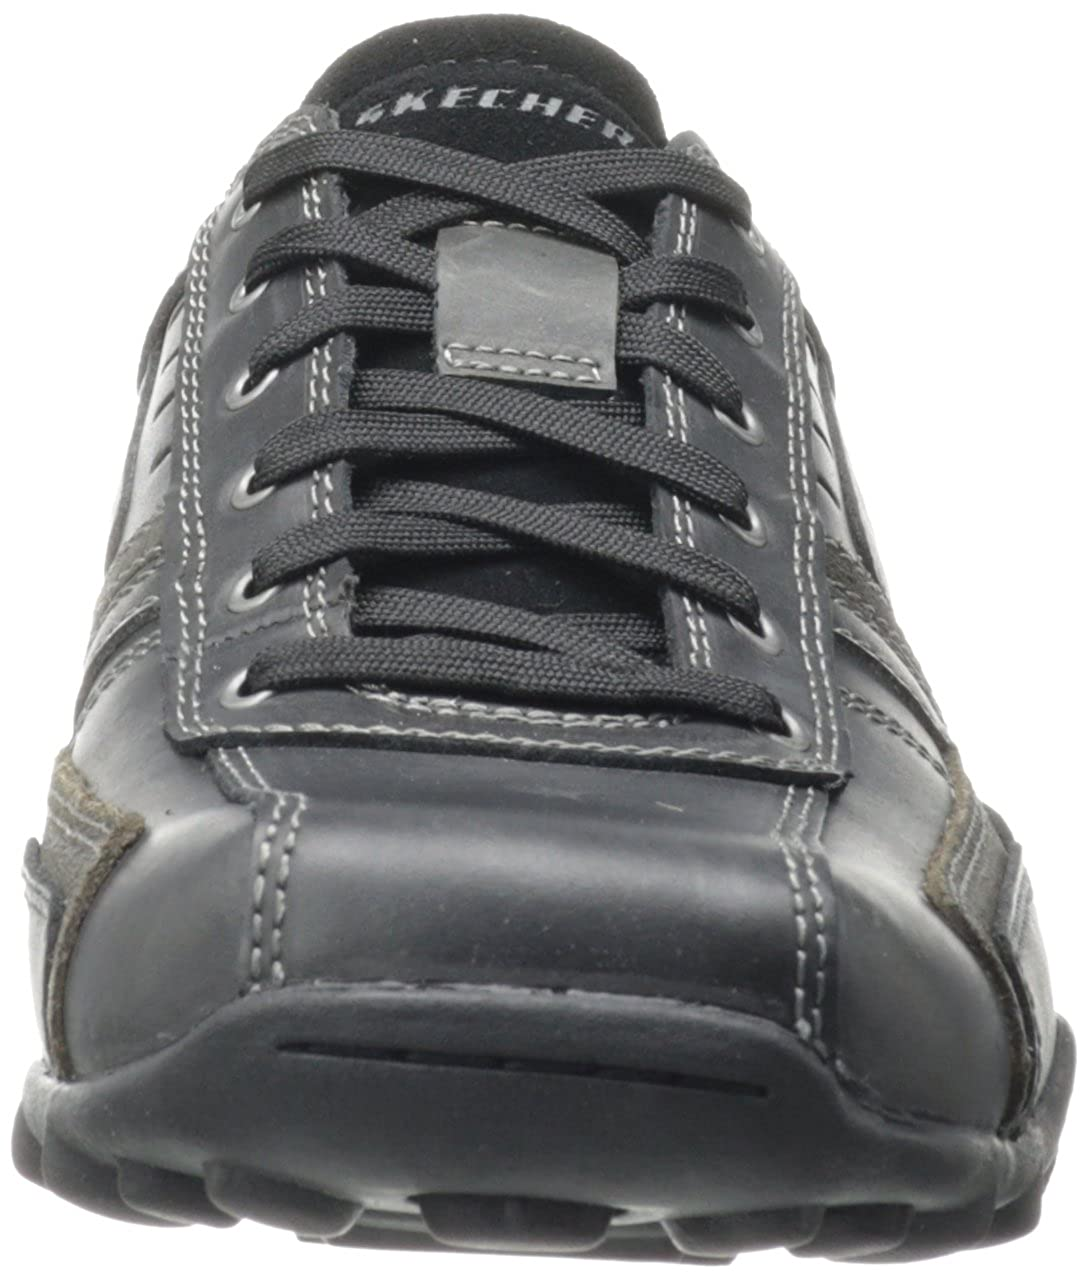 Skechers USA Men's Relaxed Fit Memory Foam Talus Valey Oxford